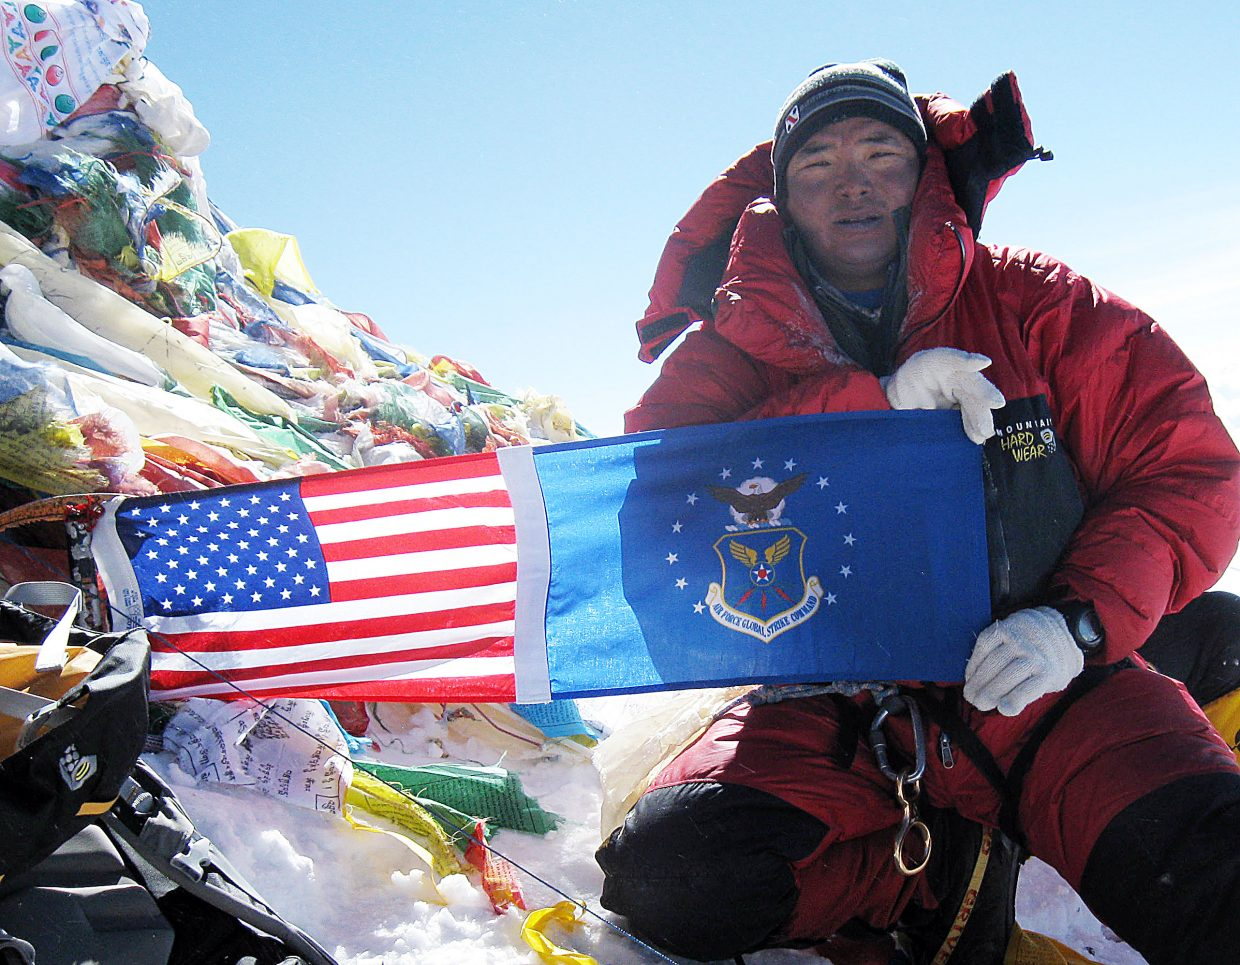 Chhiring Dorje Sherpa holds up flags at the top of Mount Everest.